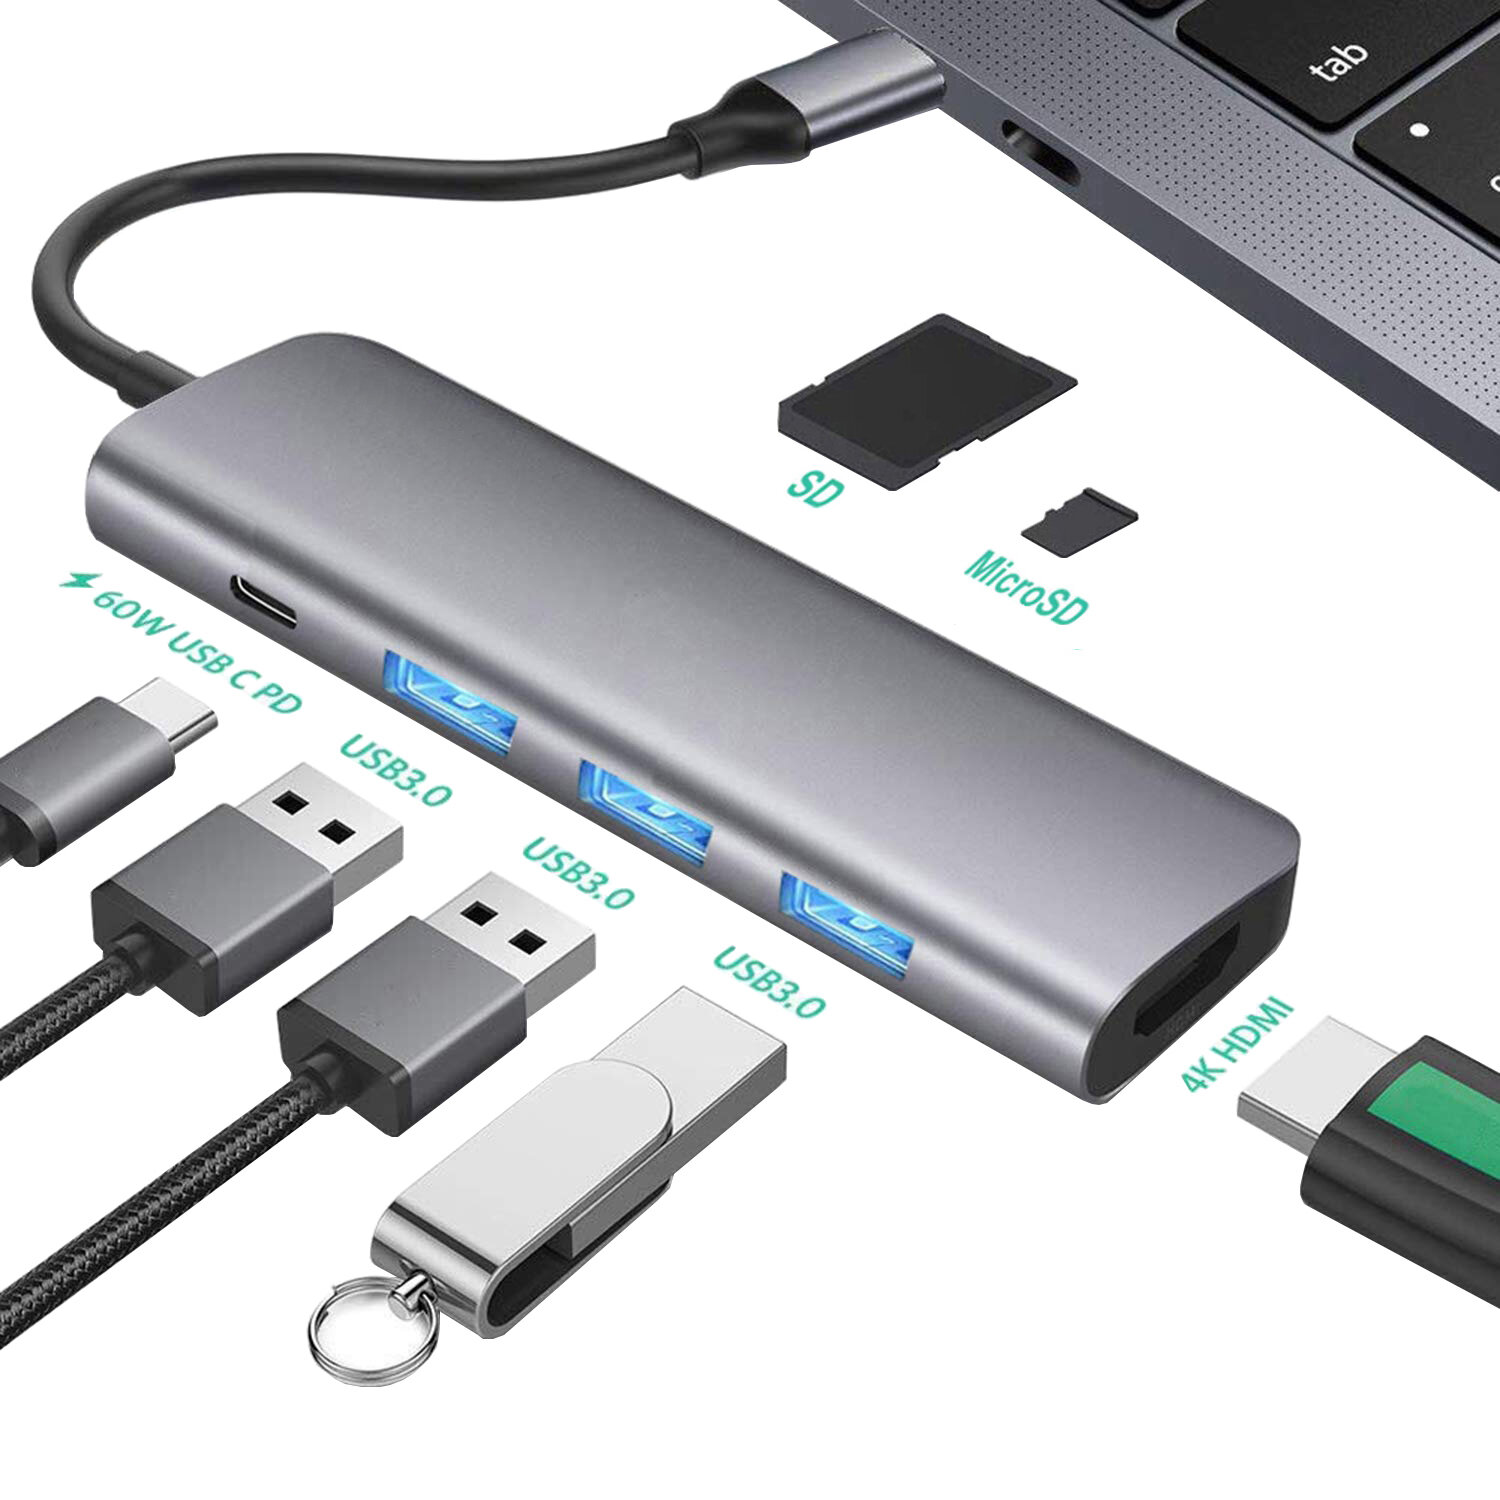 Bakeey USB C HUB Docking Station Type C to HDMI Adapter ConverterWith 60W PD Power Delivery / USB3.0*3 / 4K HDMI / Mem